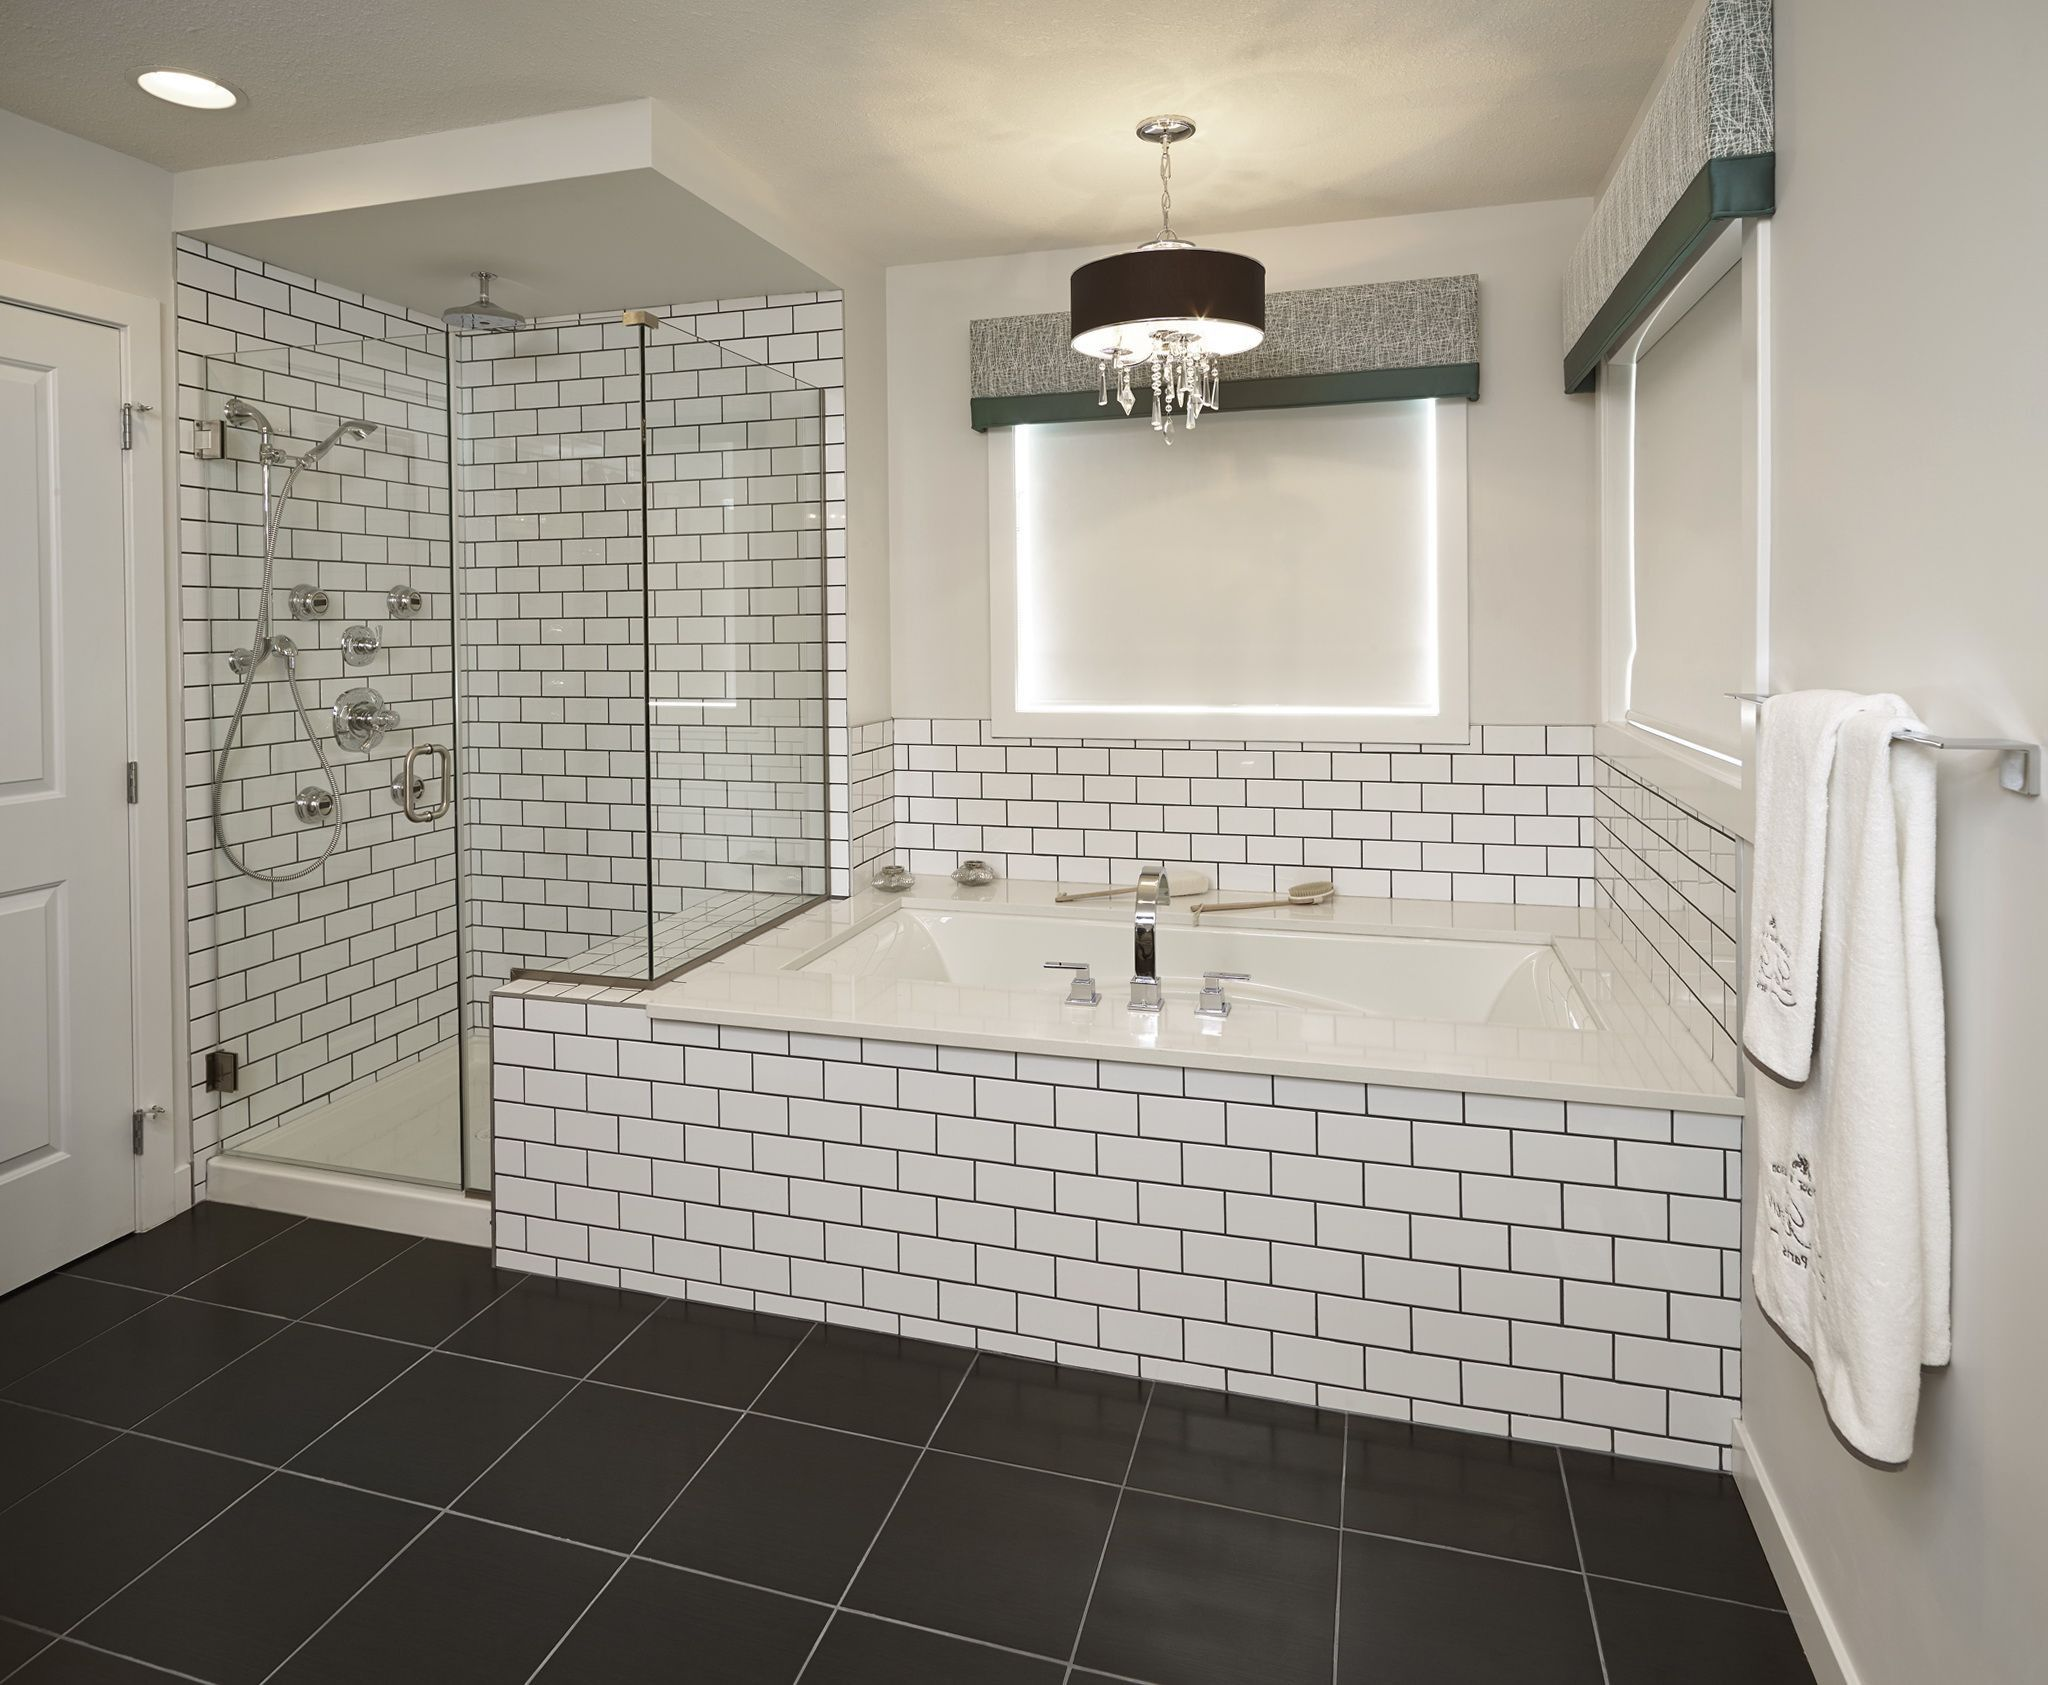 Enchanting Bathrooms With Subway Tiles White Subway Tile Shower Bathroom Tile Designs Bathtub Tile